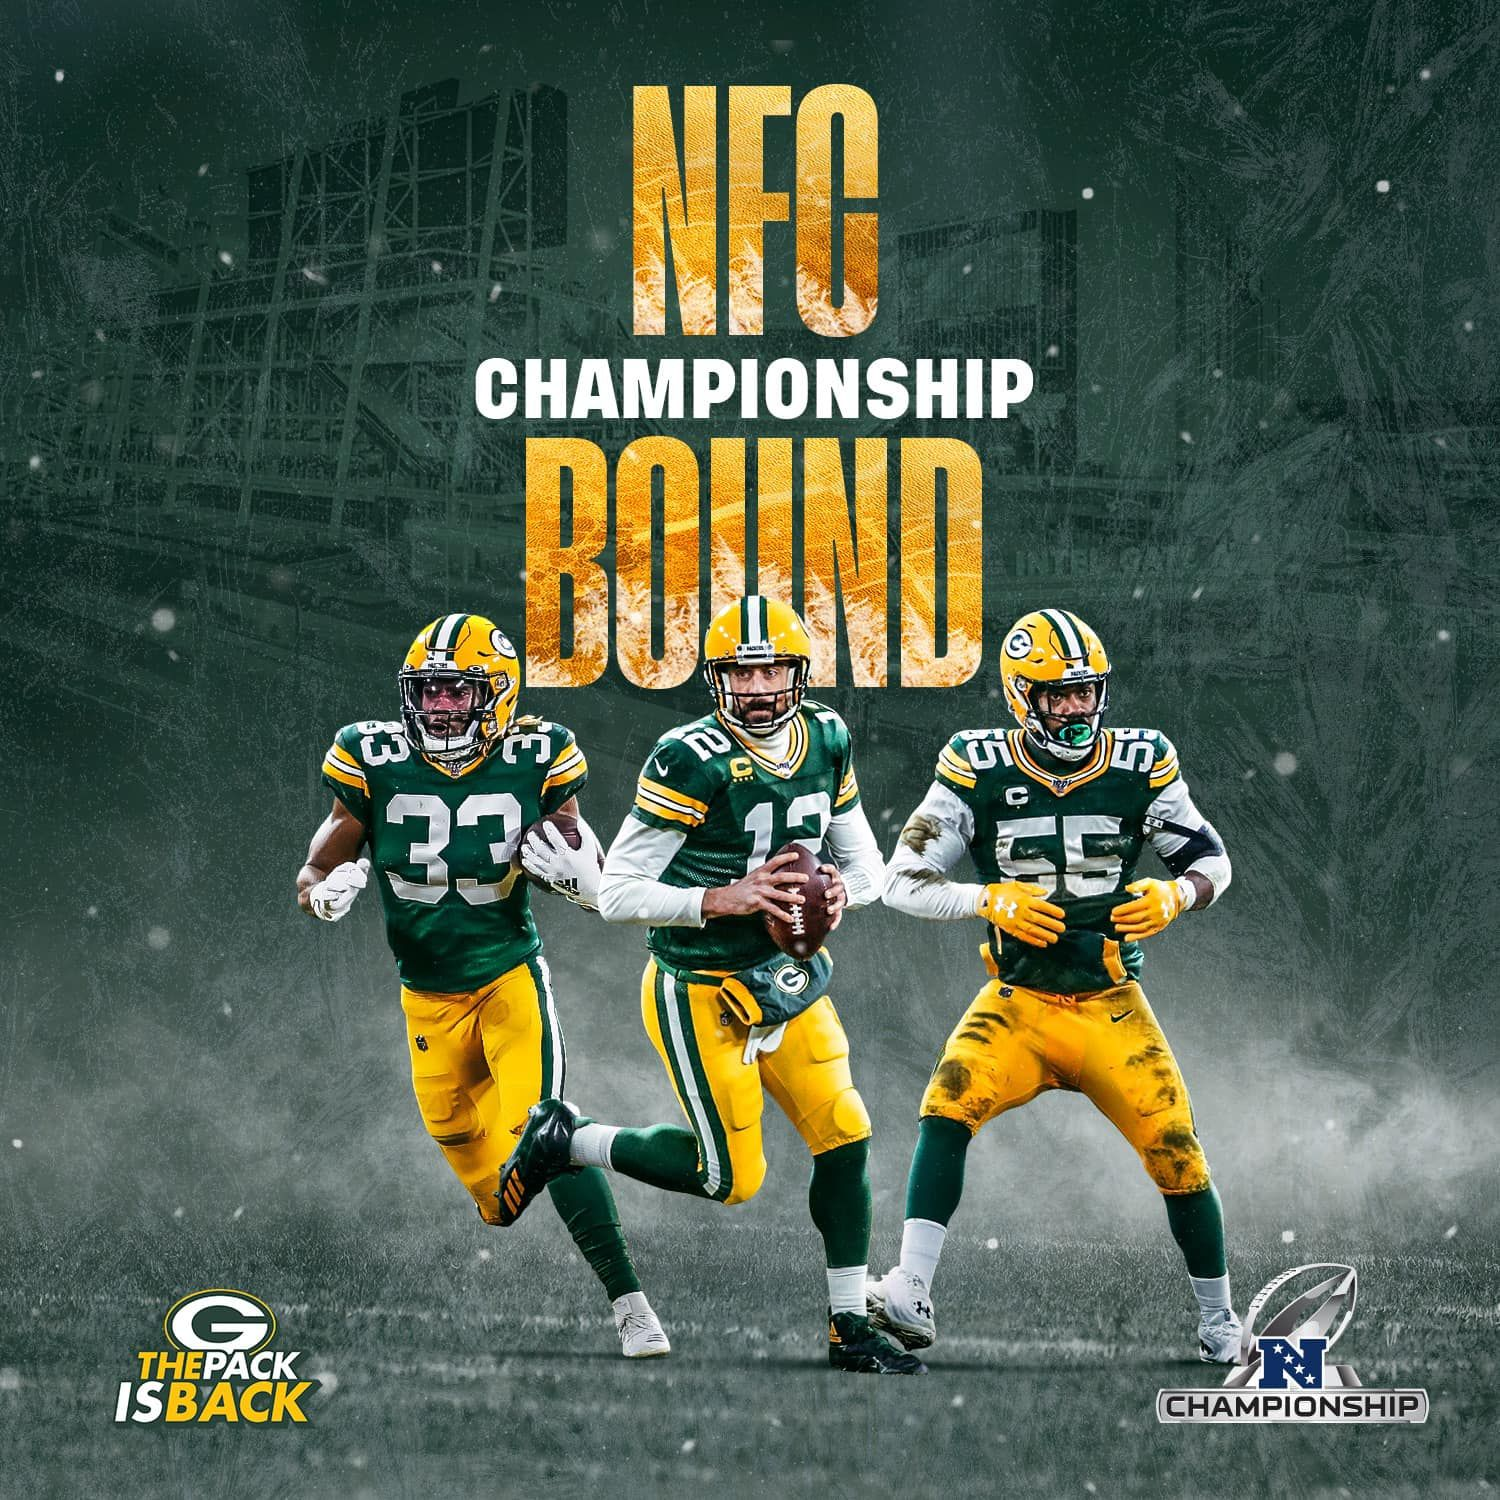 Nfc Championship Bound In 2020 Green Bay Packers Football Green Bay Football Nfc Championship Game